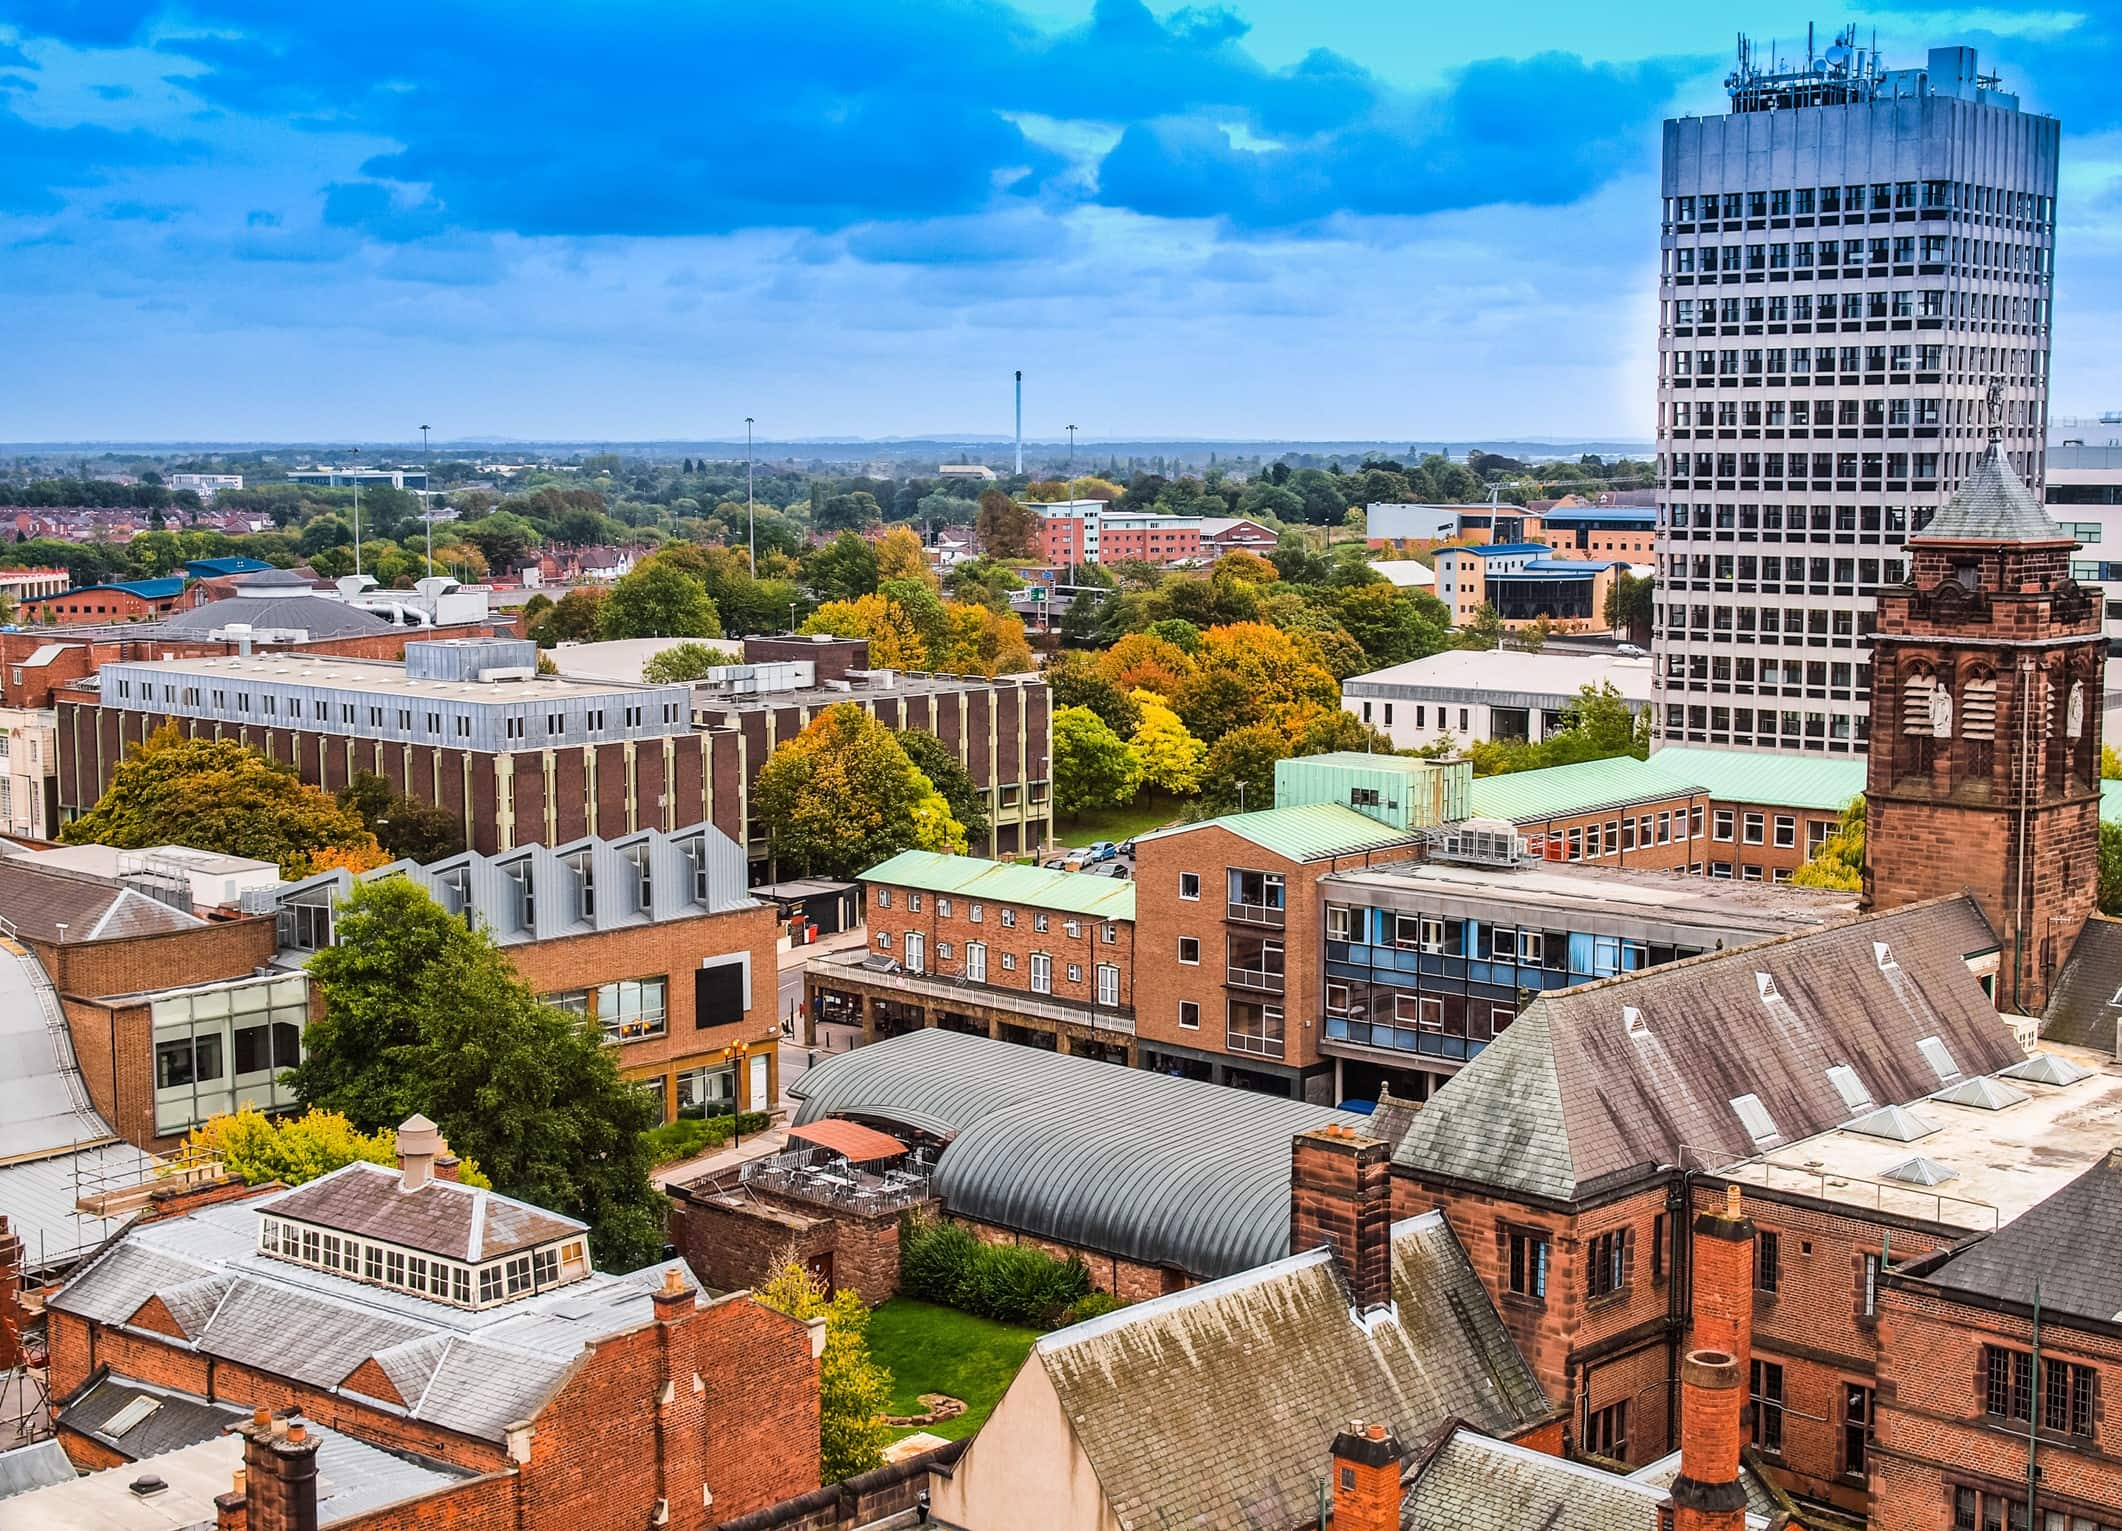 Panoramic view of the city of Coventry, England, UK